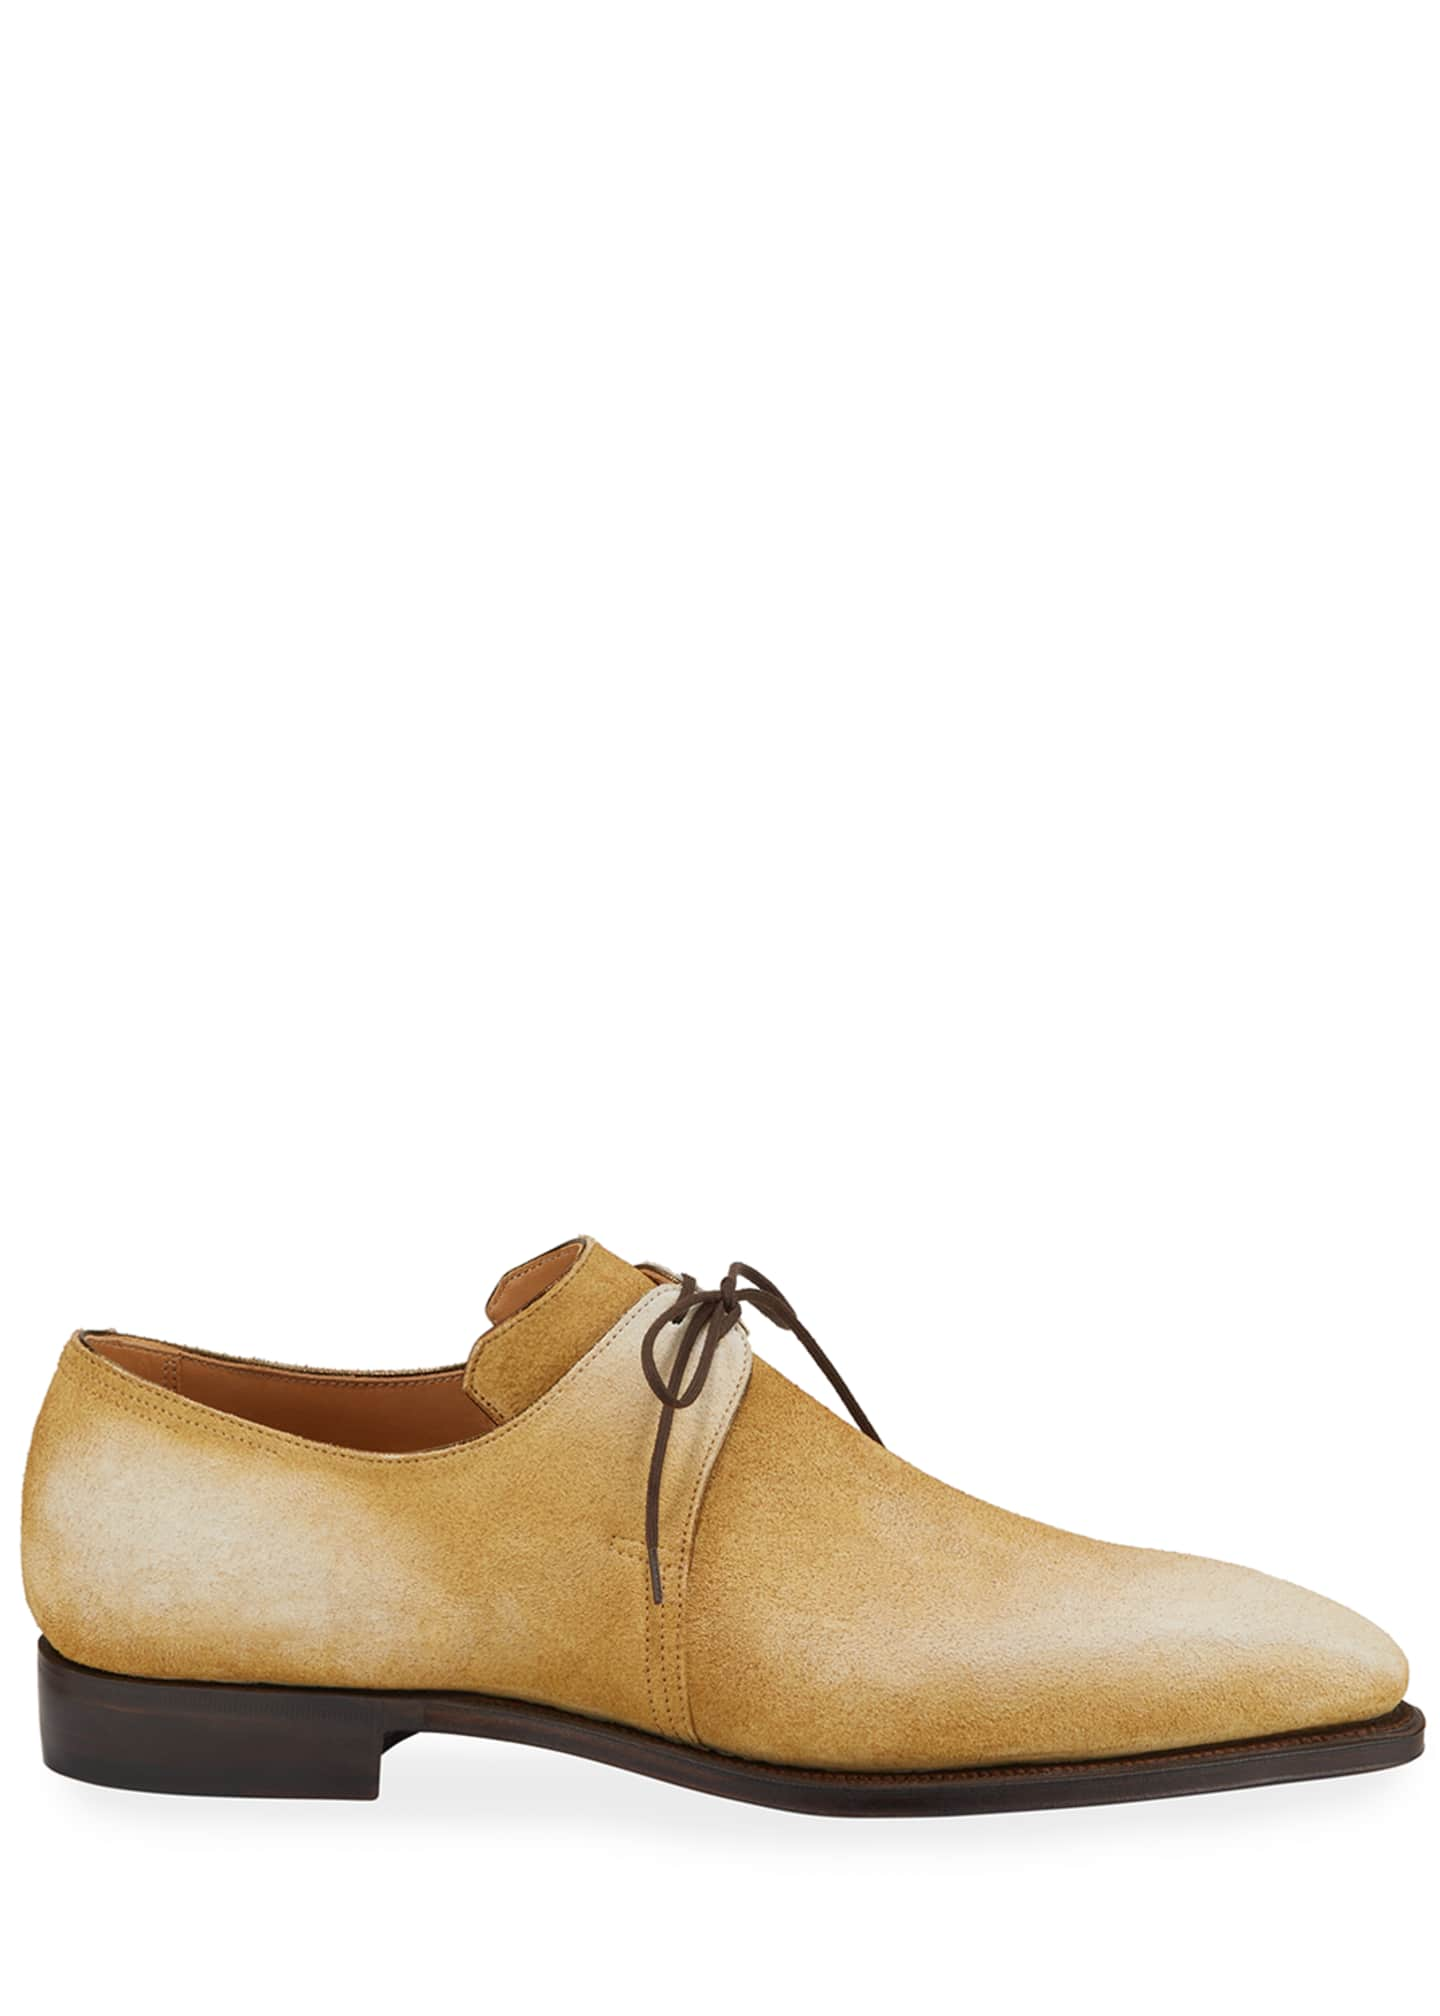 Image 3 of 3: Men's Arca Pullman Suede Lace-Up Shoes